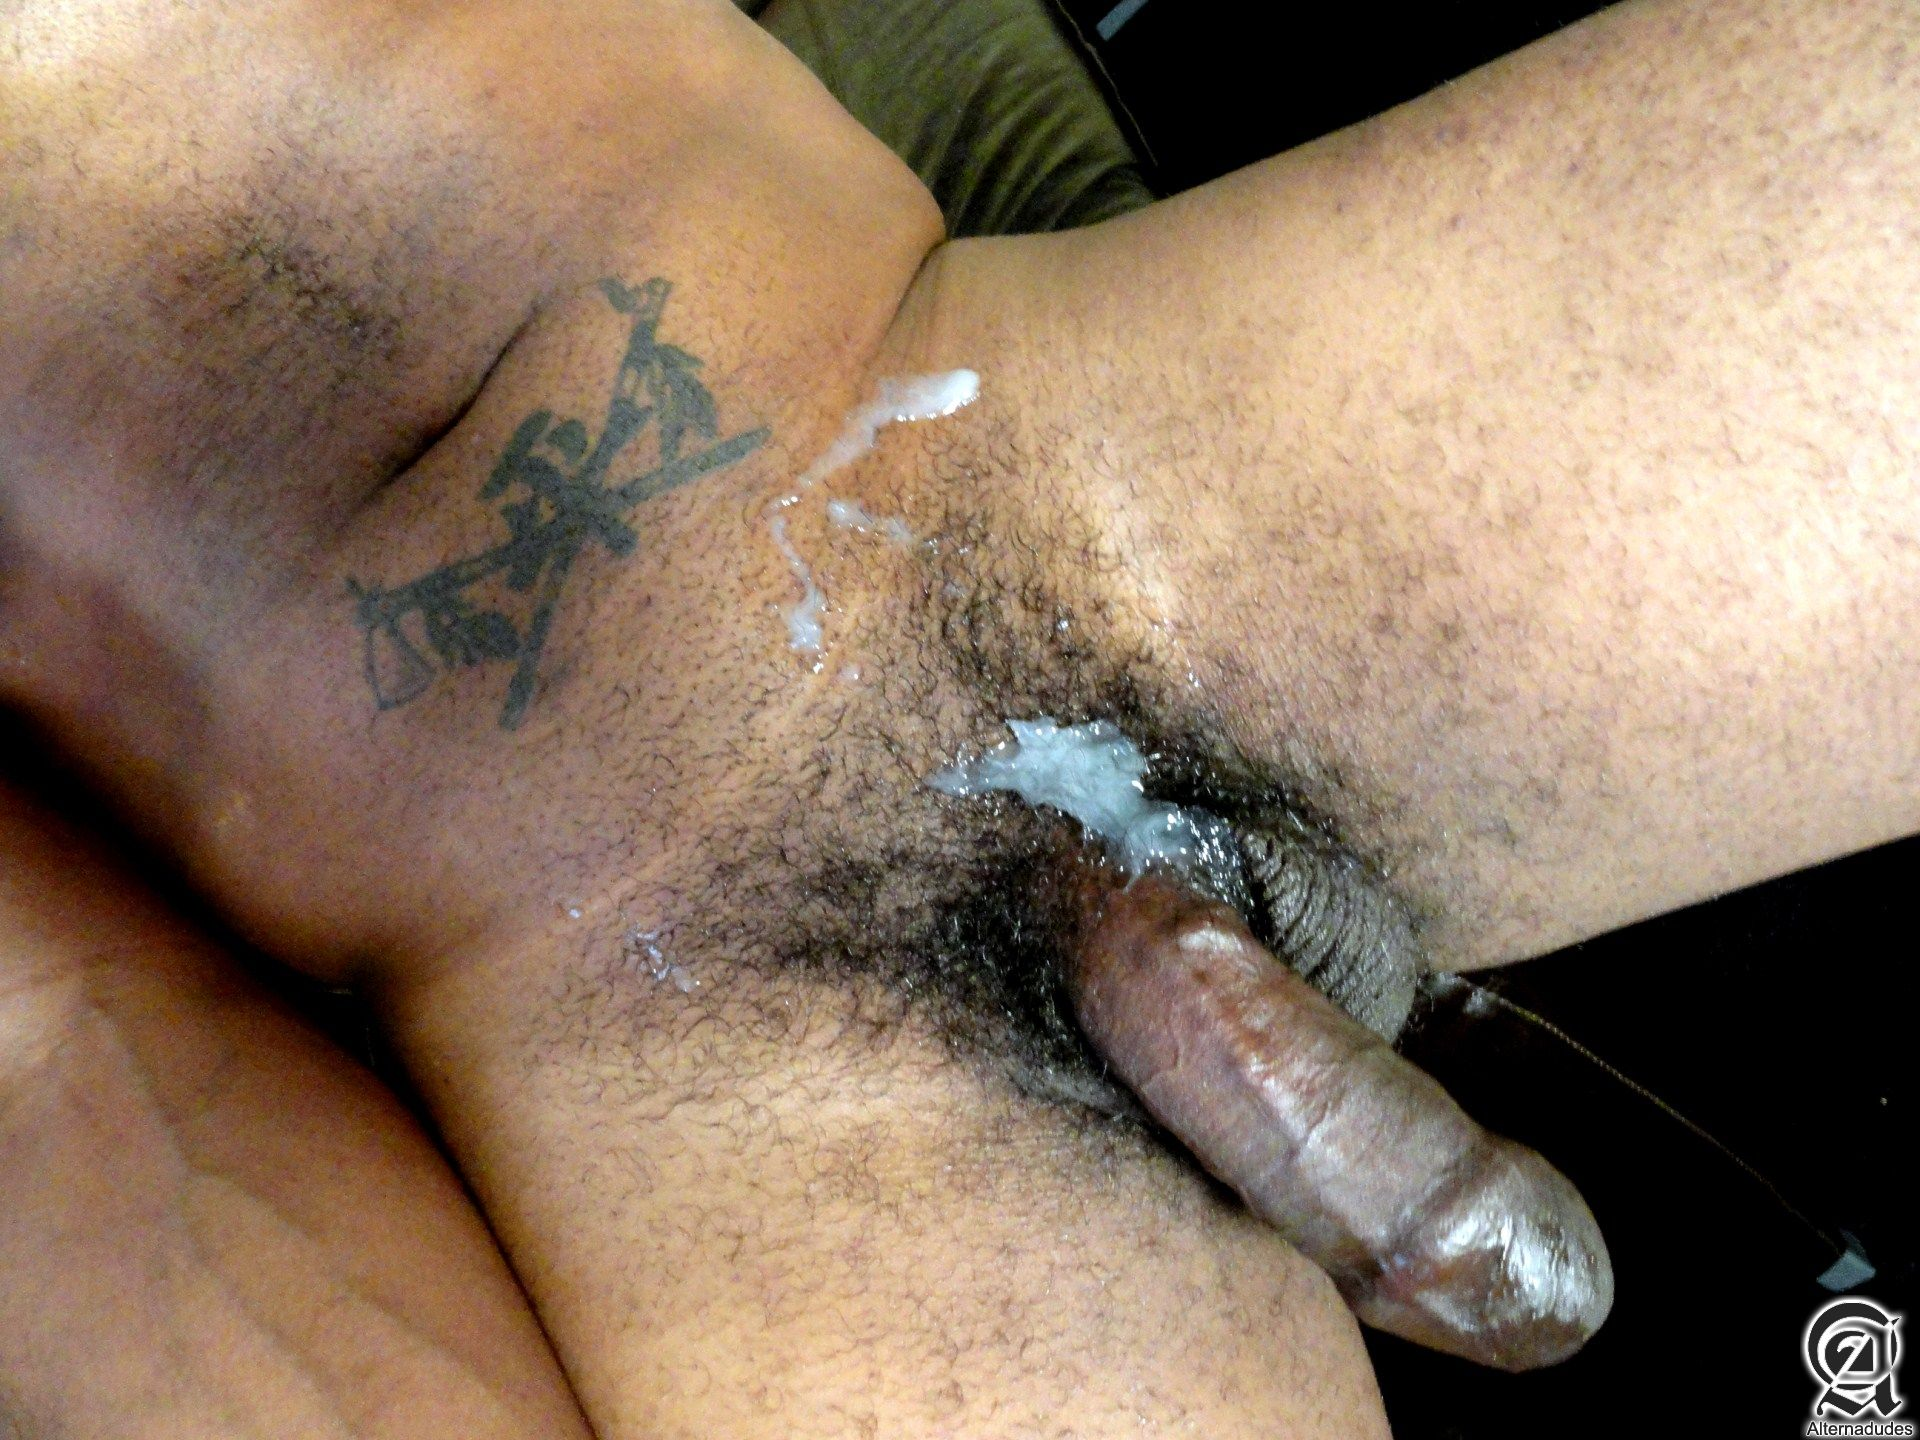 Big dick video free download